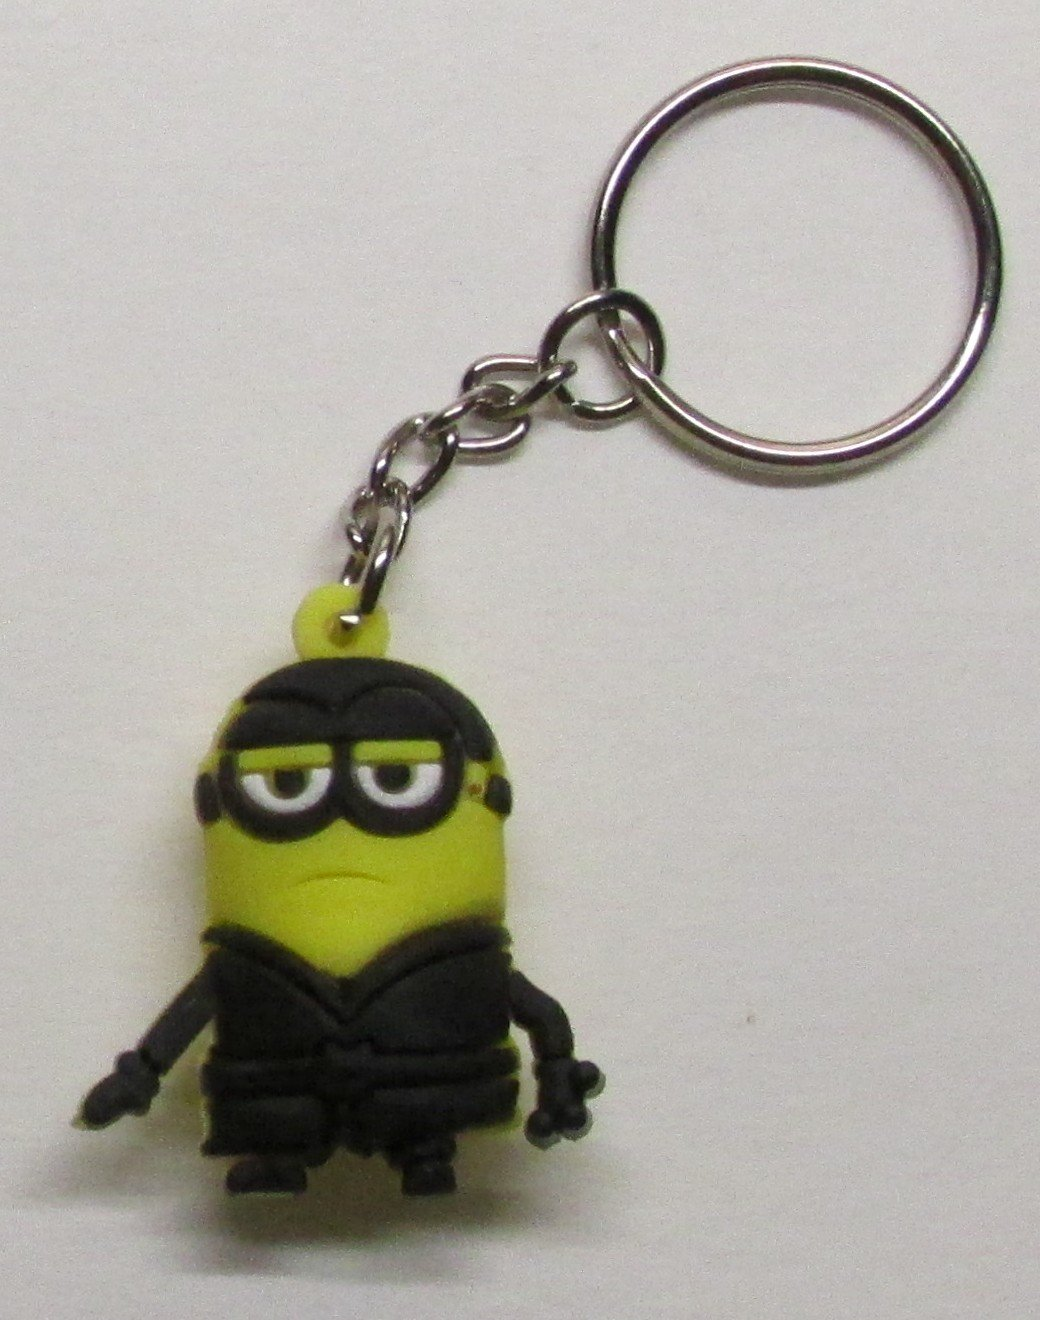 KEVIN the MINION Despicable Me Silicone Rubber KEY CHAIN Ring Keychain NEW